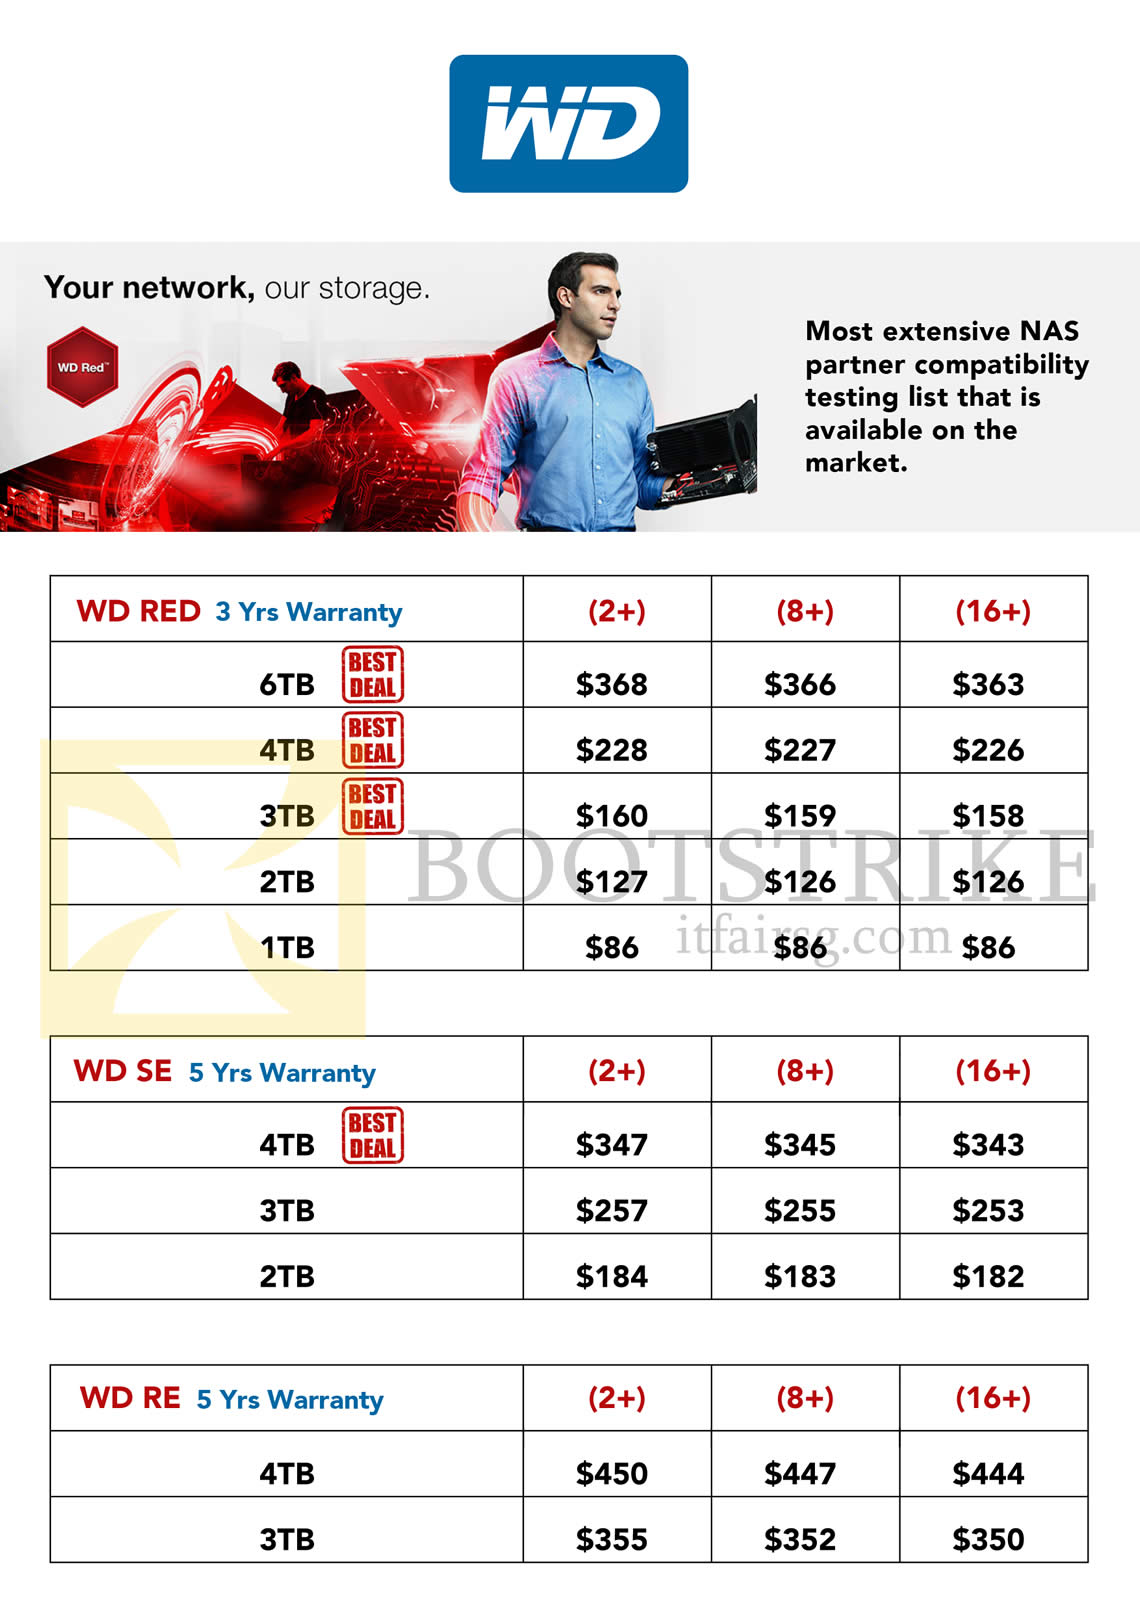 COMEX 2014 price list image brochure of Memory World NAS WD HDD Red, SE, RE 1TB, 2TB, 3TB, 4TB, 5TB, 6TB